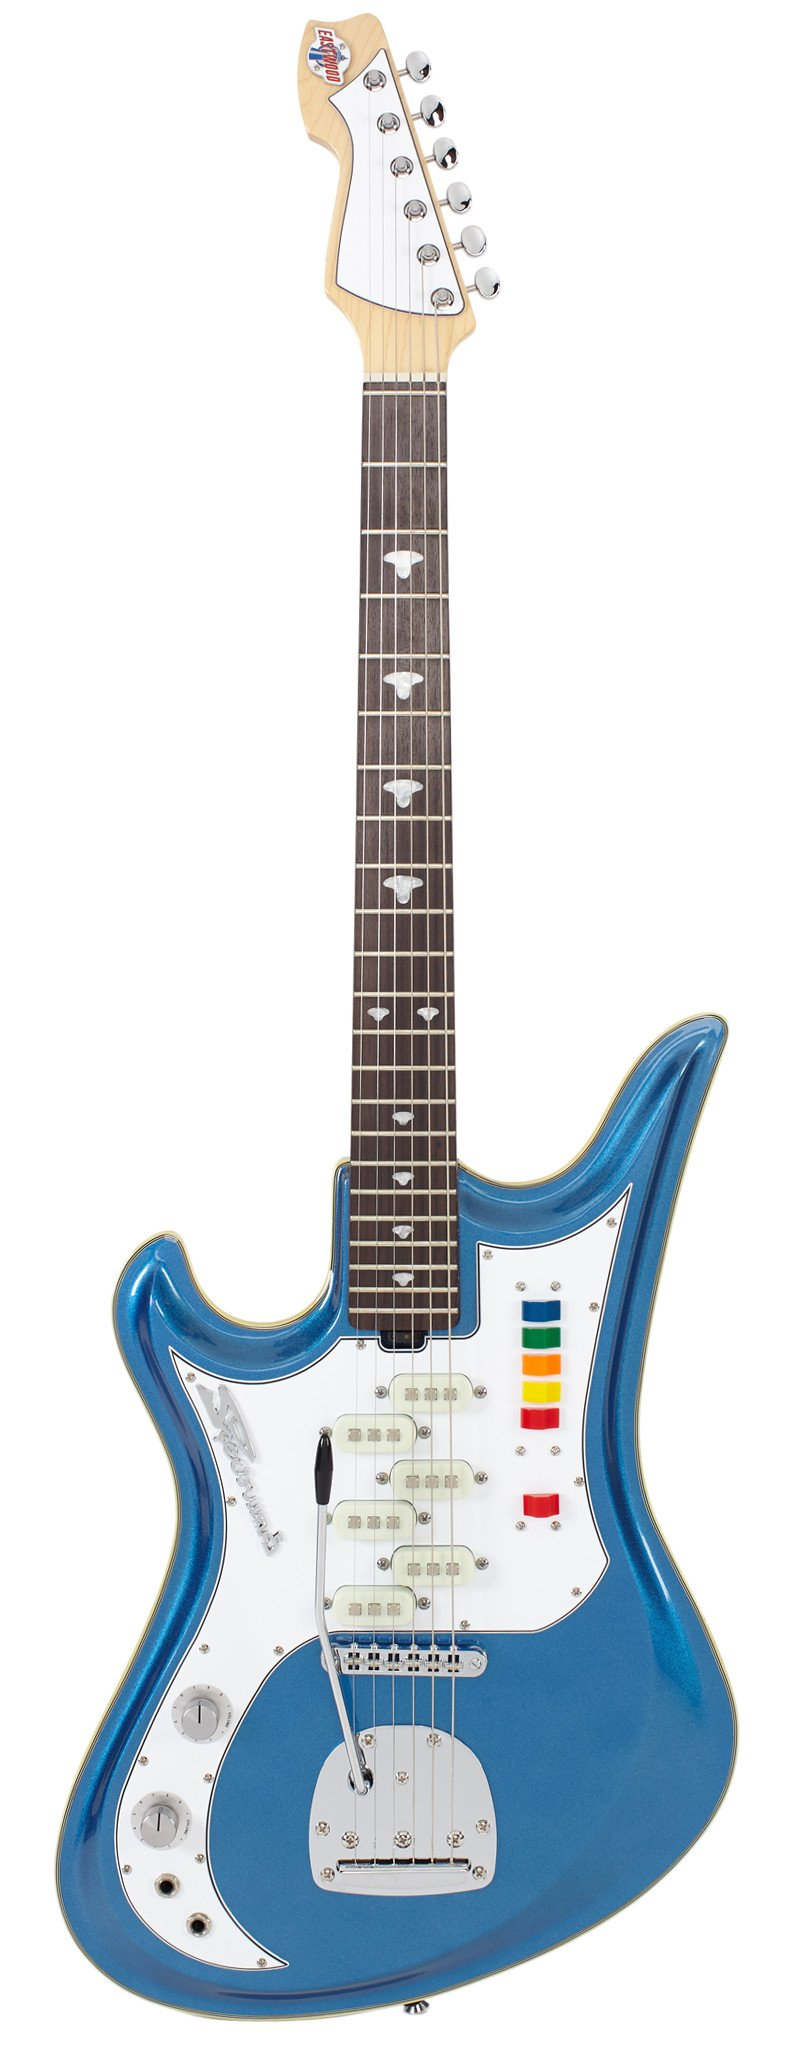 Eastwood Guitars Spectrum 5 PRO Metallic Blue LH Full Front